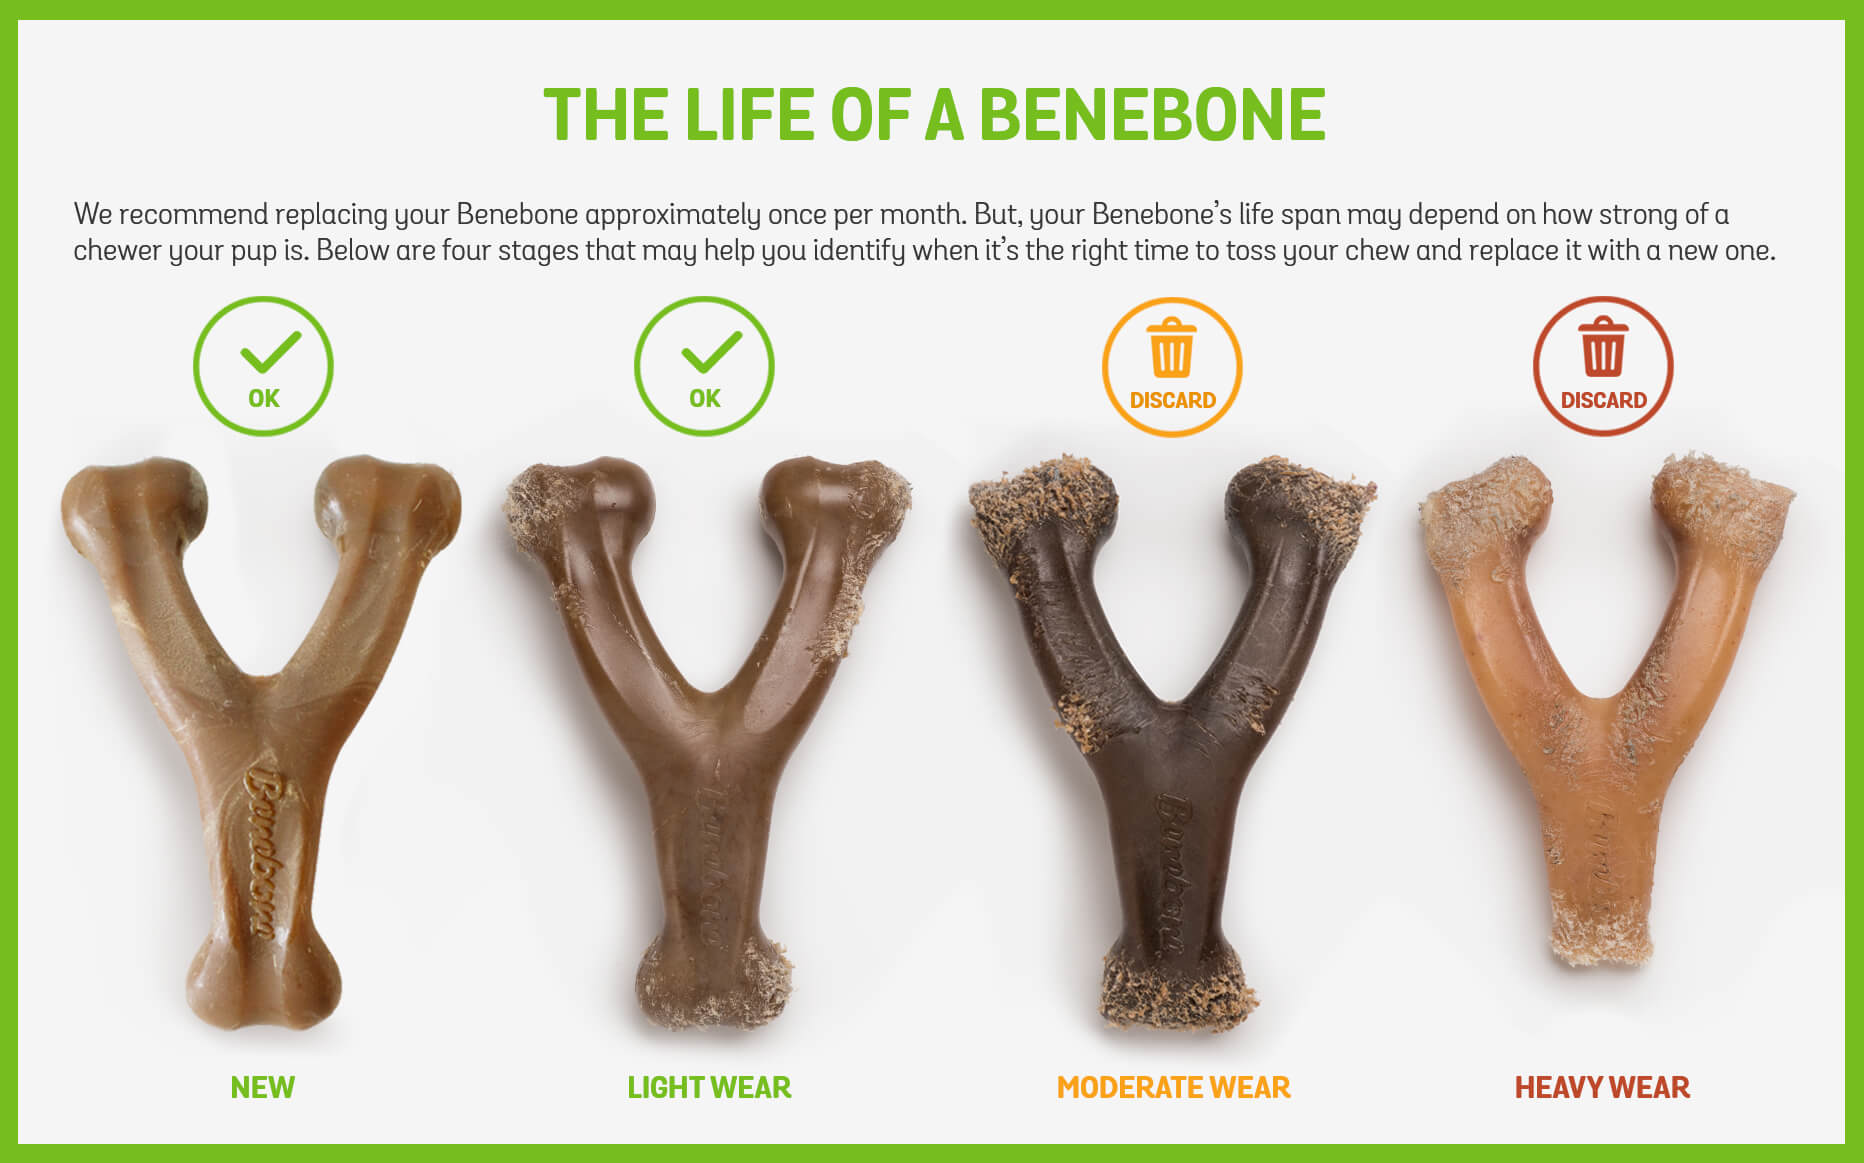 Life of a Benebone. Below are 4 stages that may help you identify when to replace your chew with a new one.